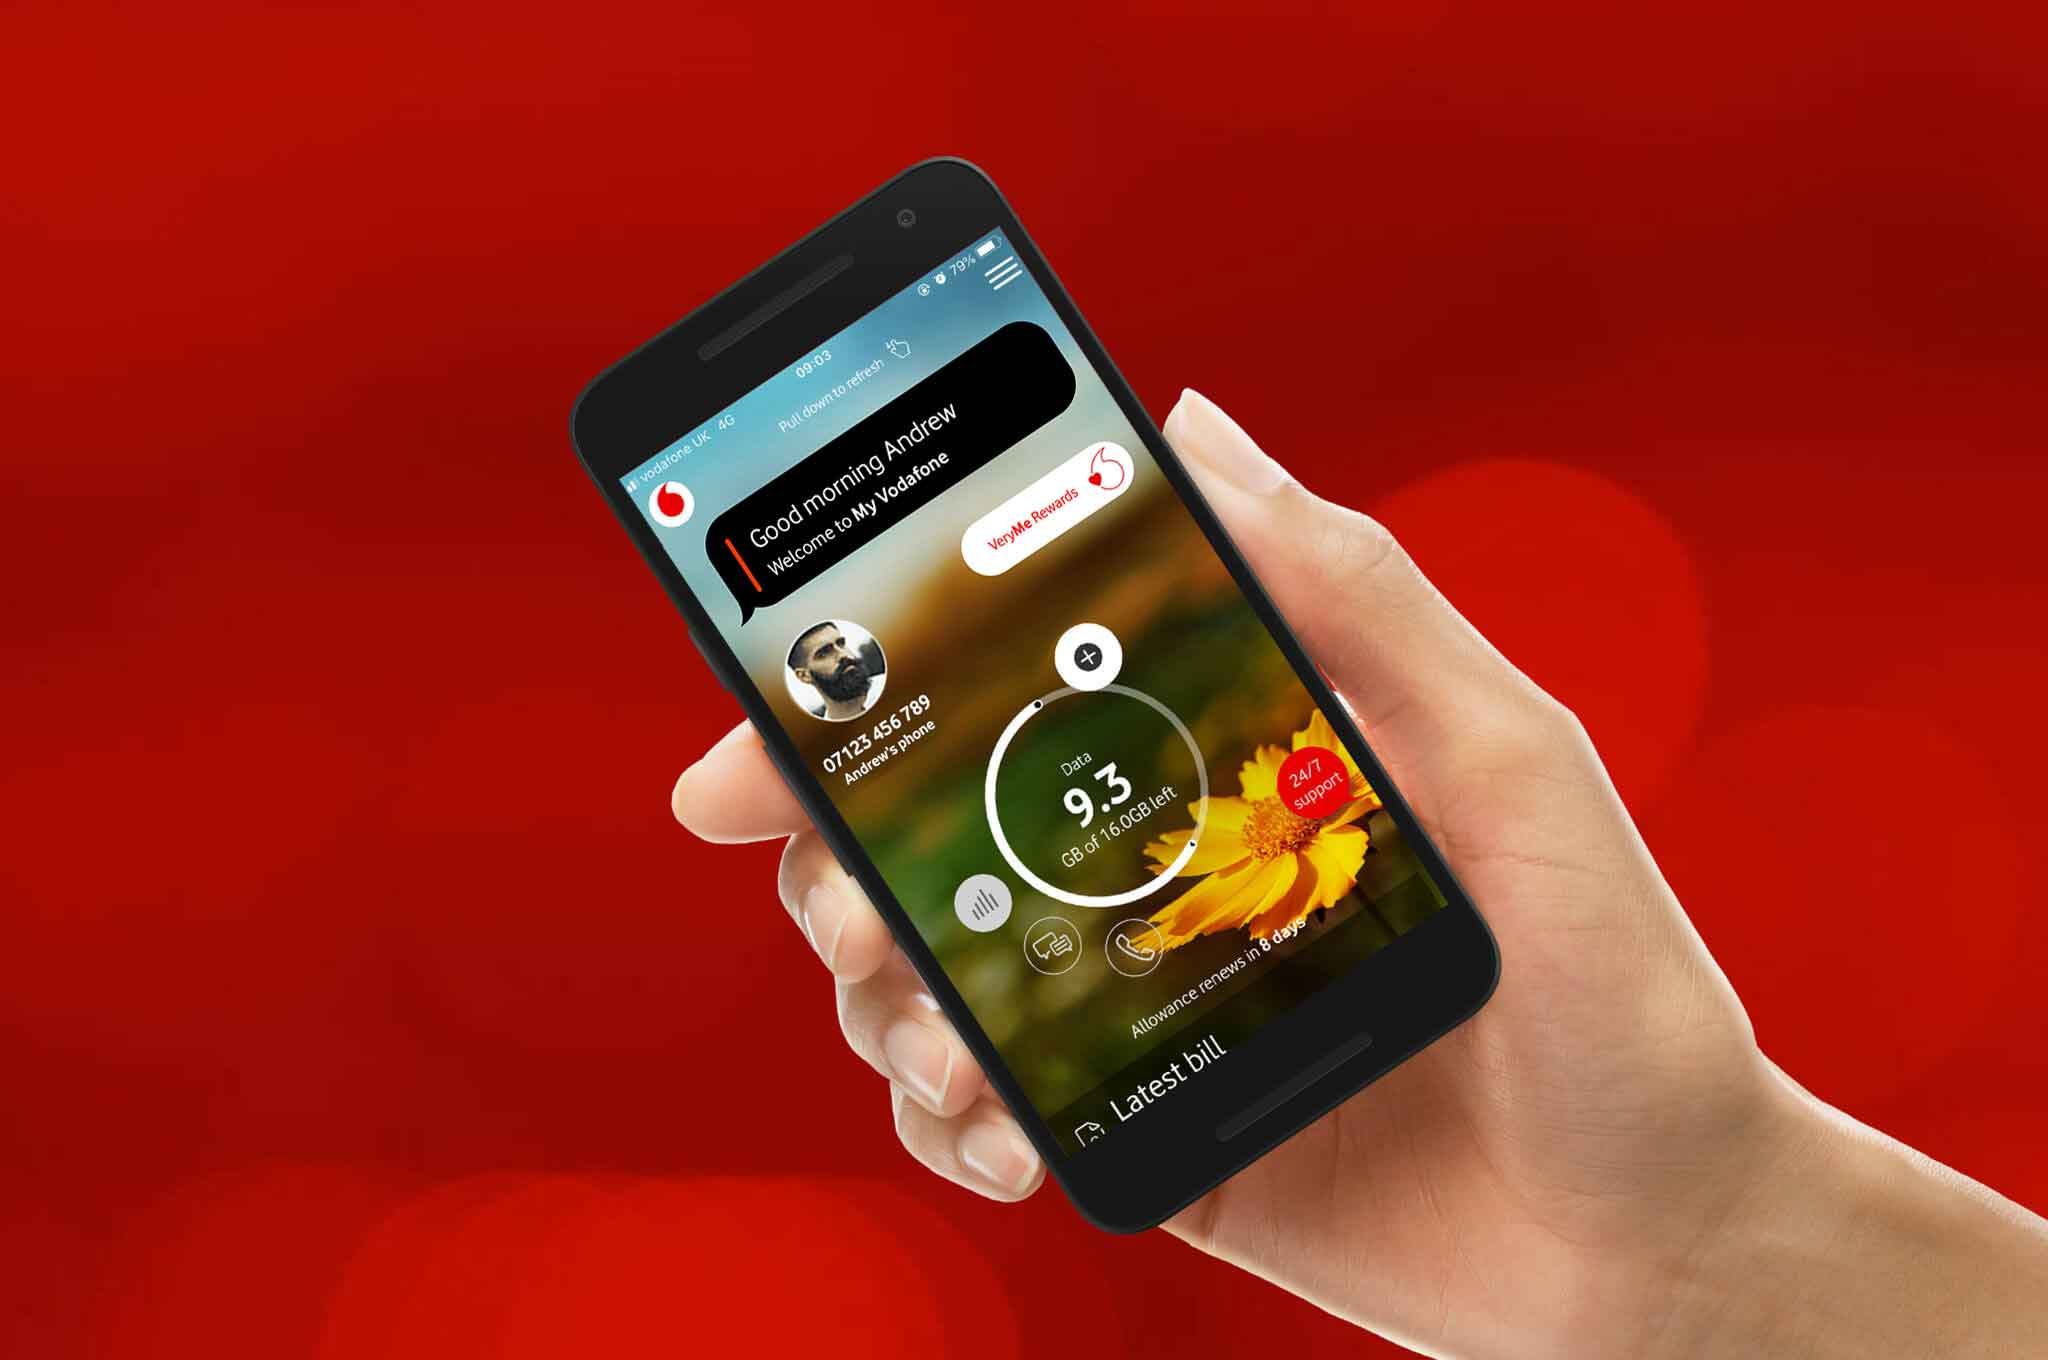 Getting started with Vodafone